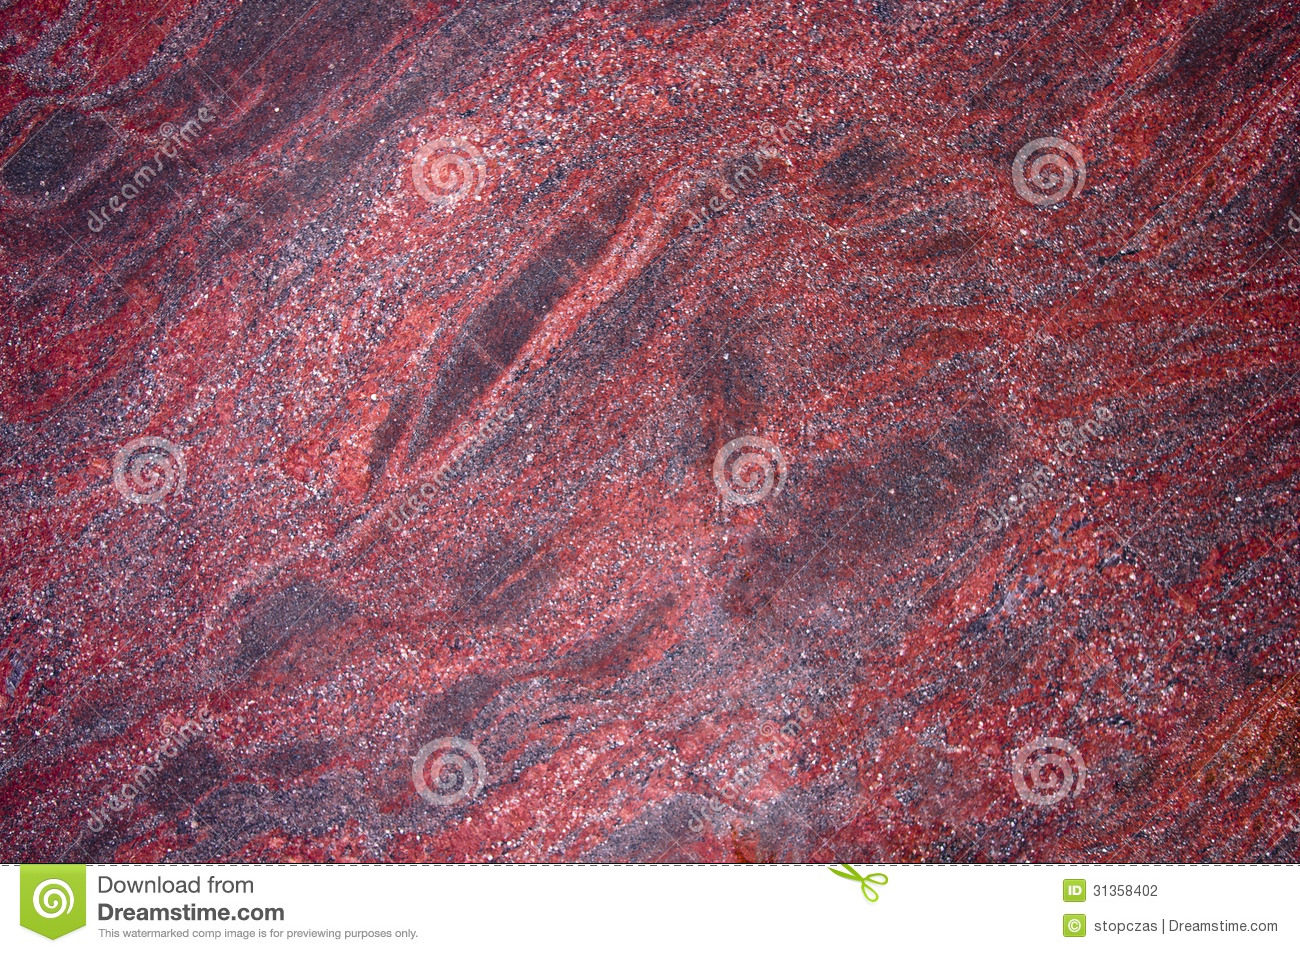 Red Marble slab texture